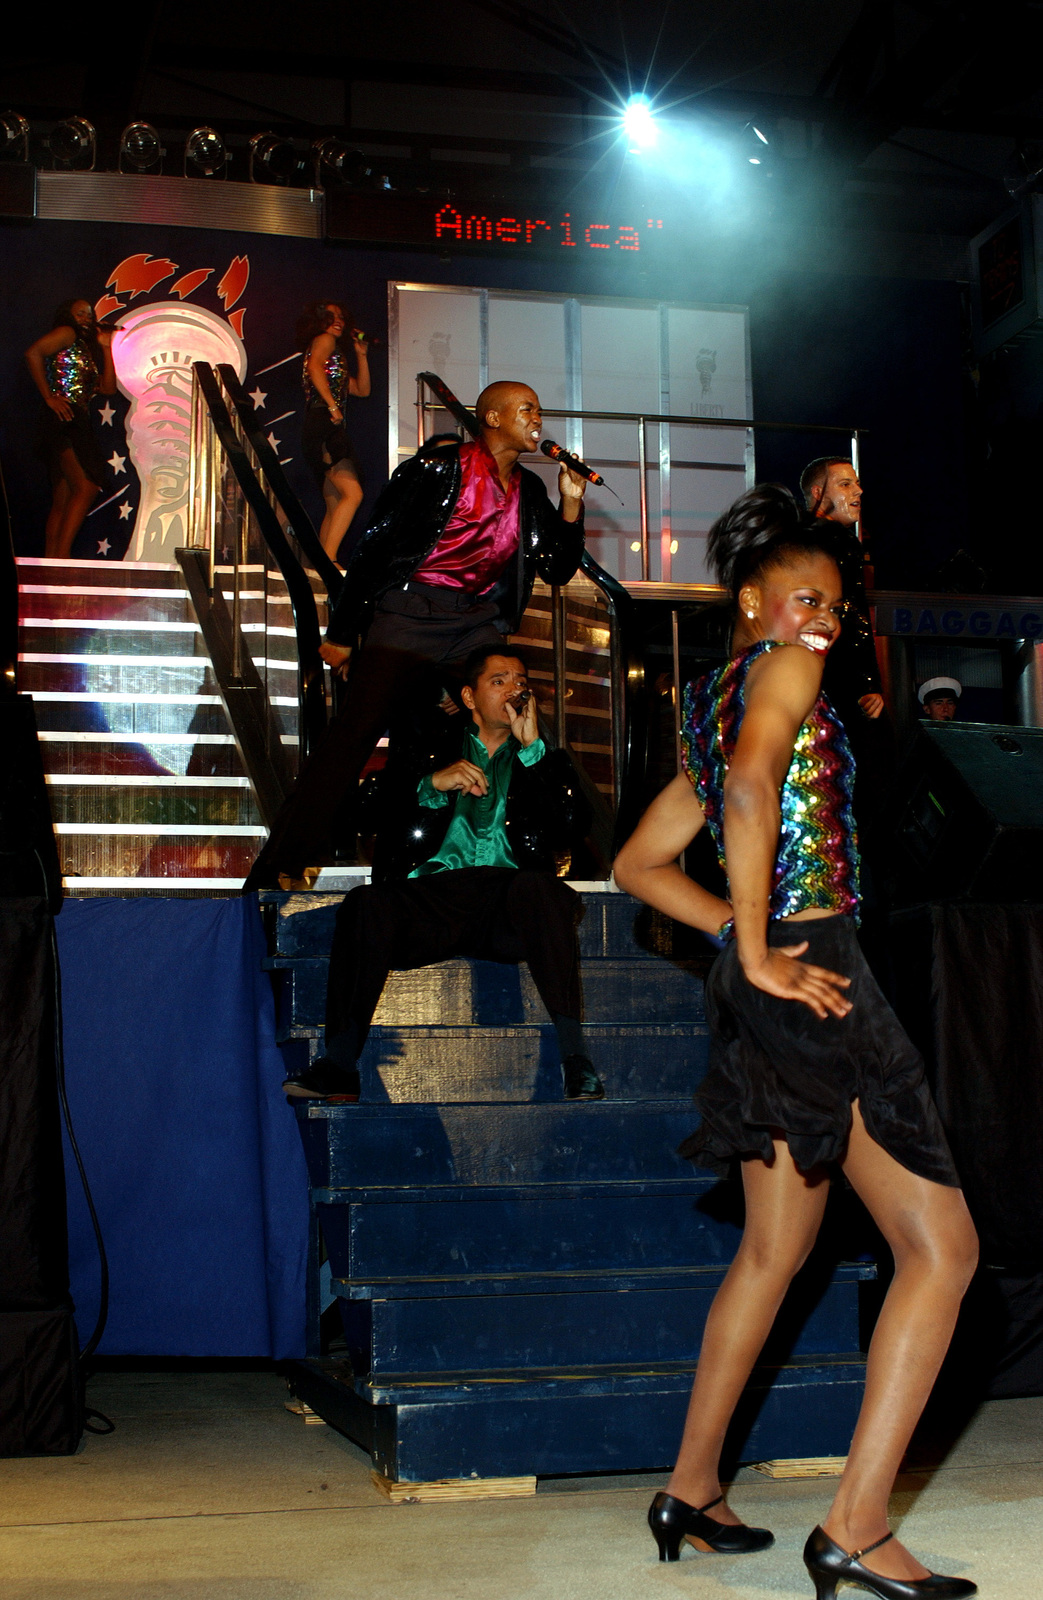 """The US Air Force (USAF) """"Tops in Blue"""" entertainment troupe performs a show entitled """"Spirit of America"""" which highlights the ethnic diversity and contributions made by Americans at Ramstein Air Base (AB), Germany"""